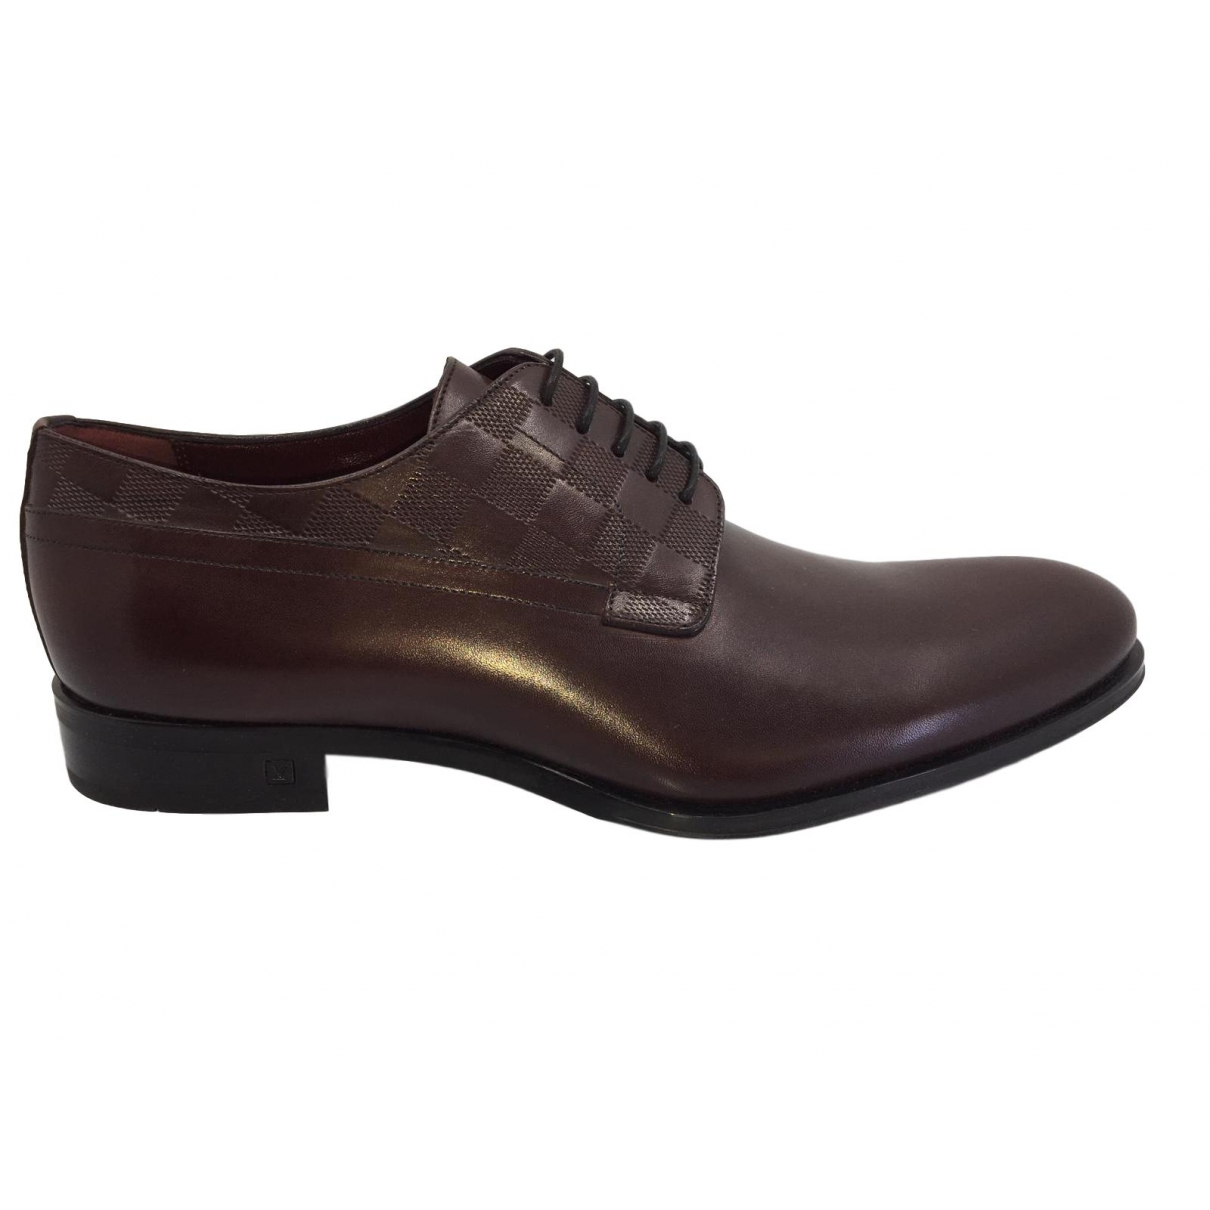 Louis Vuitton \N Burgundy Leather Lace ups for Men 7 UK